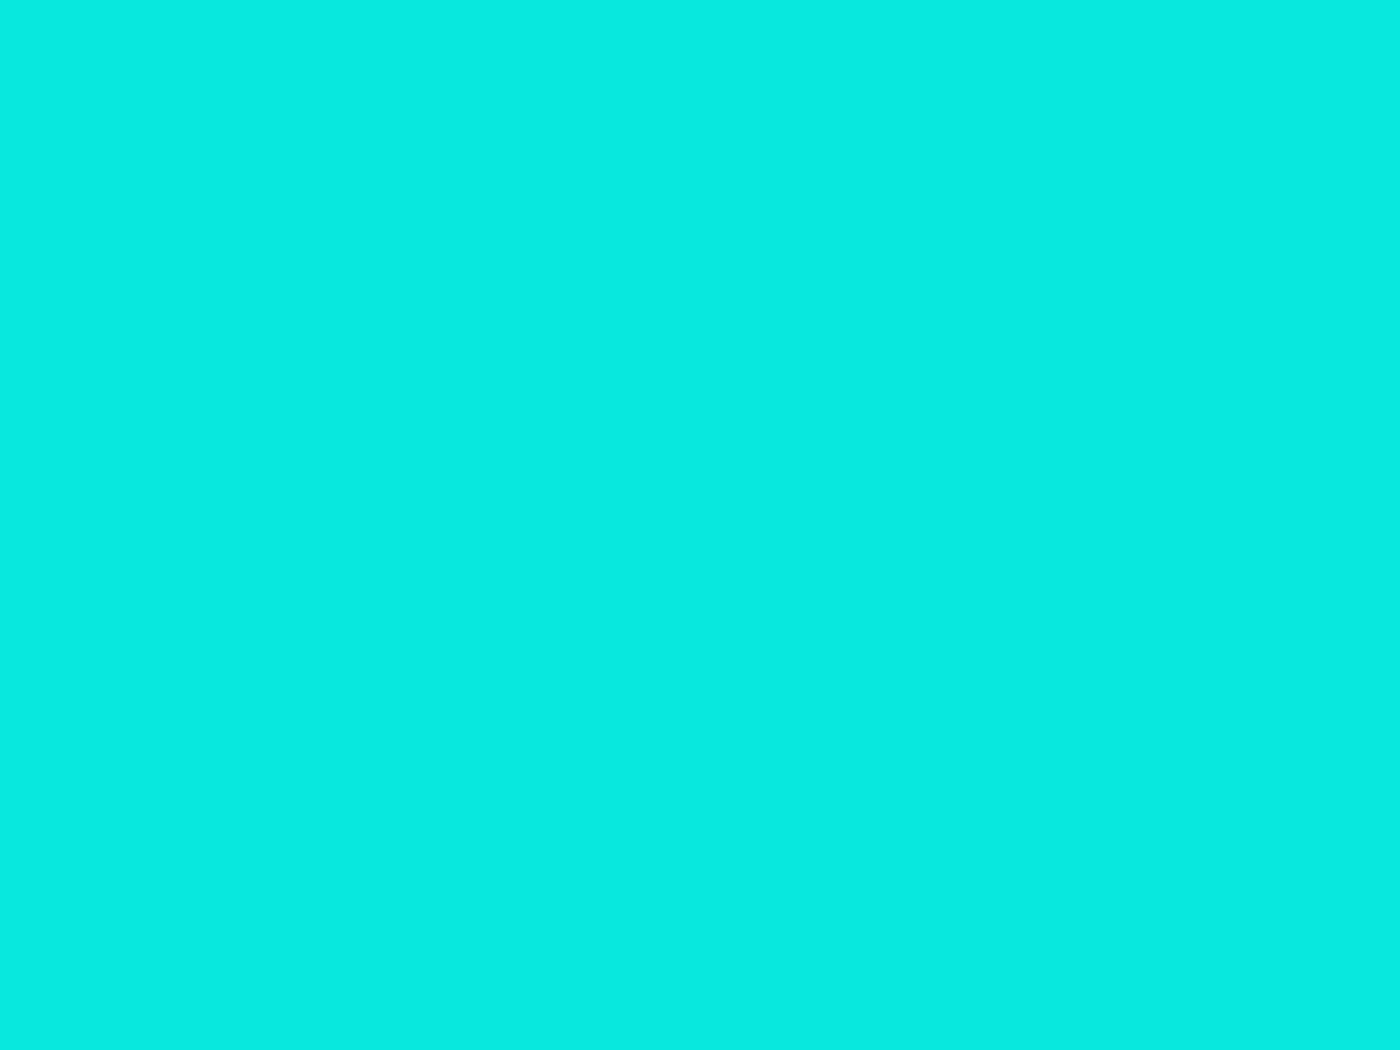 1400x1050 Bright Turquoise Solid Color Background